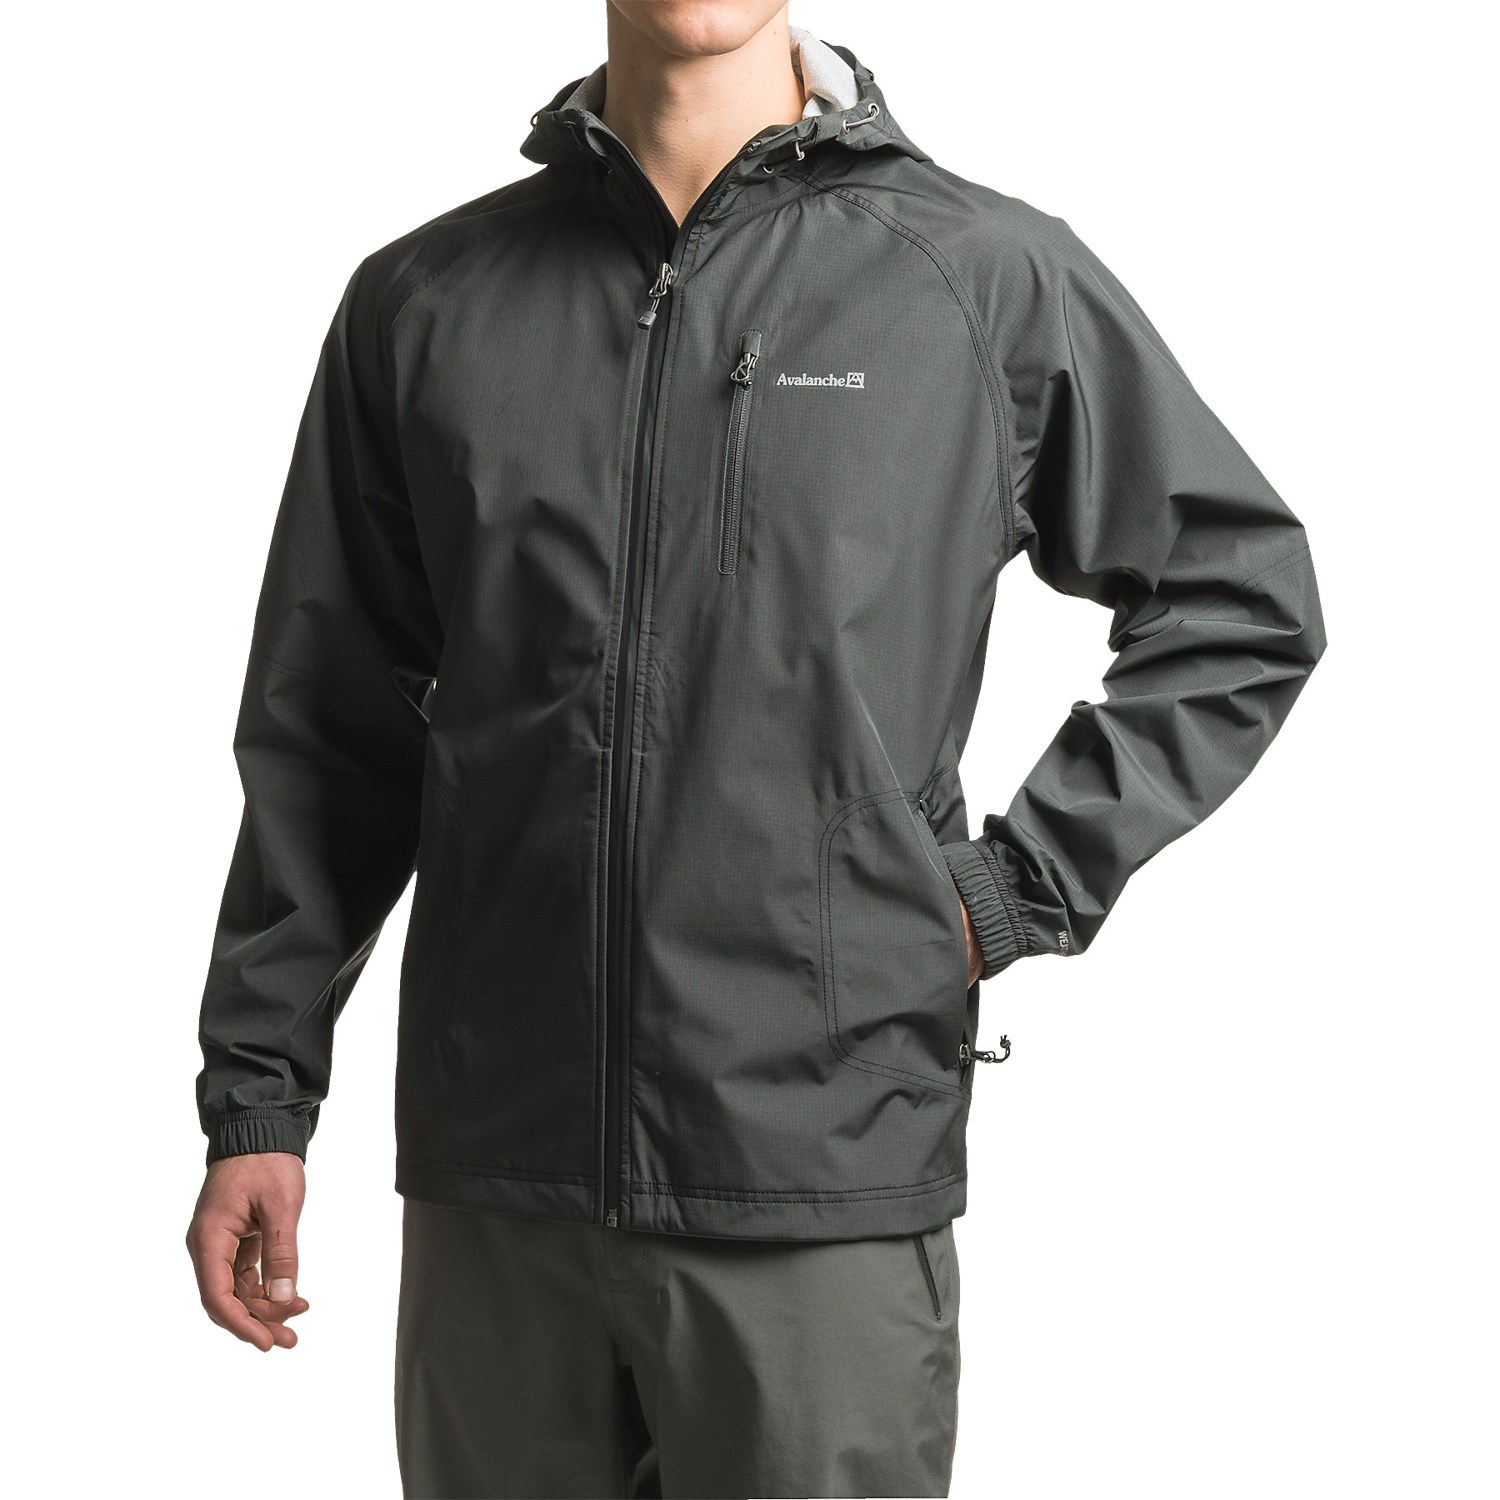 Avalanche Wear Sentinel Hooded Rain Jacket (For Men) - Save 37%